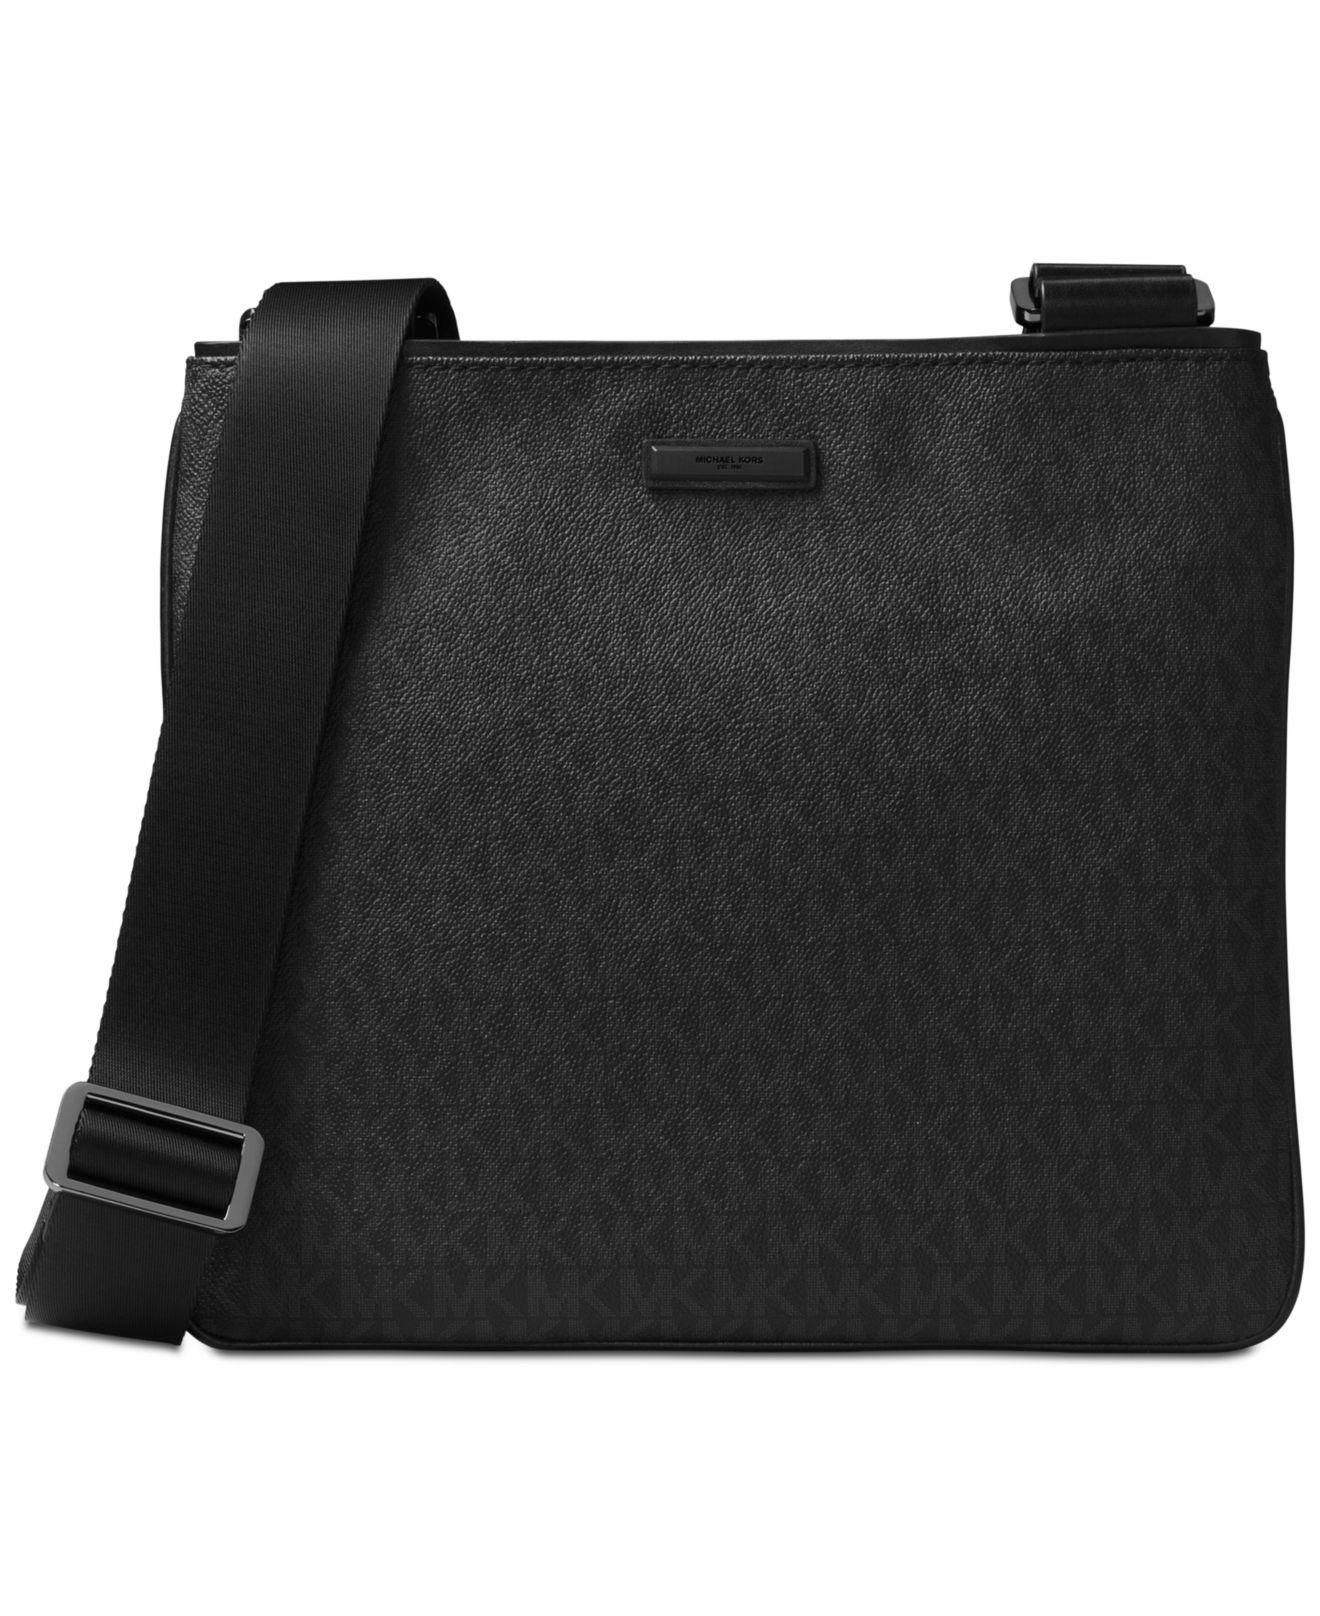 3c3499f4631b3 Michael Kors - Black Logo-print Crossbody Bag for Men - Lyst. View  fullscreen